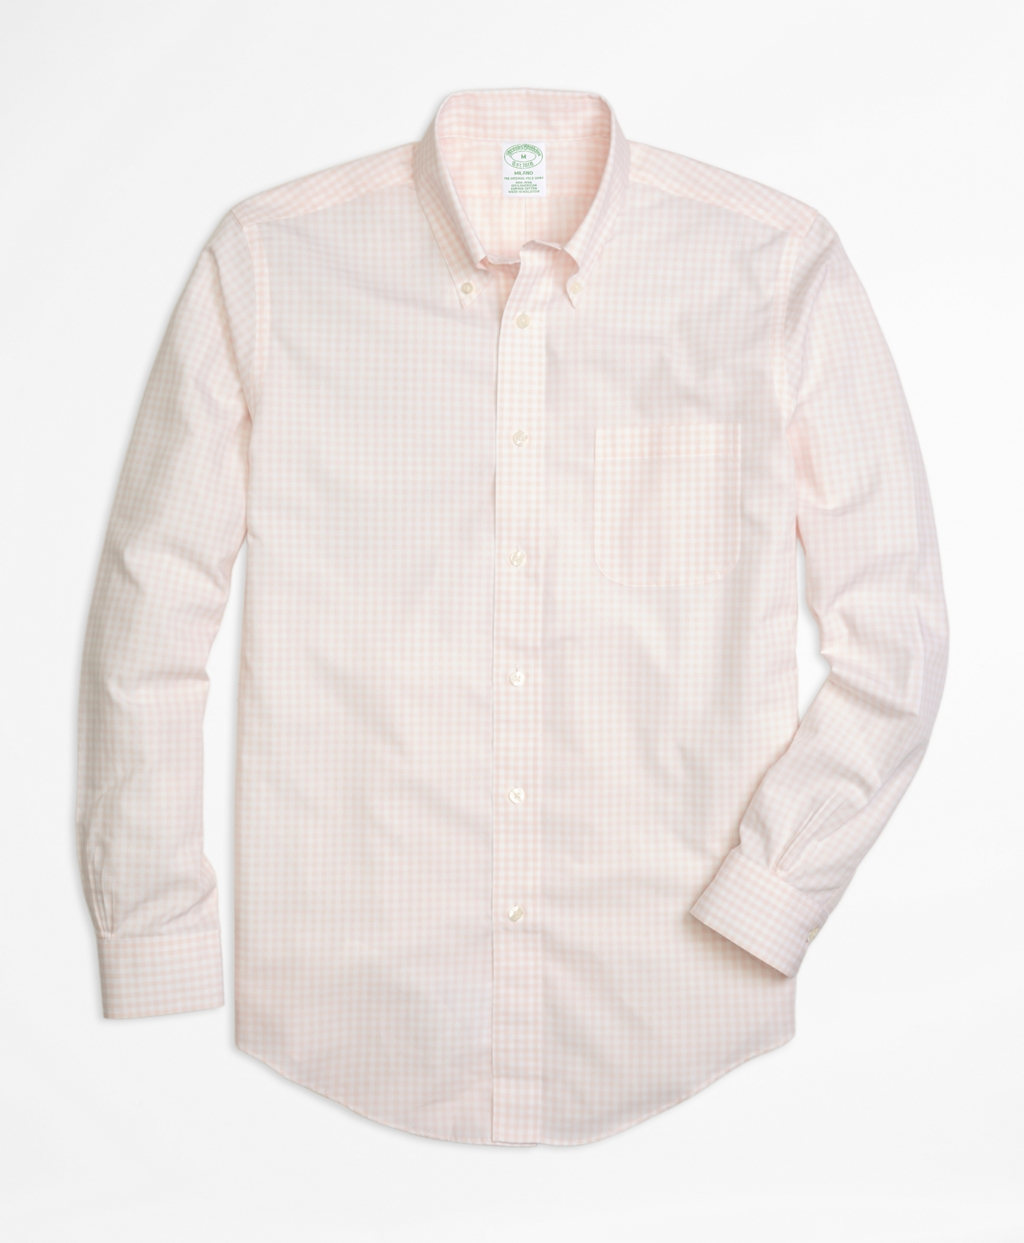 Brooks brothers non iron milano fit gingham sport shirt in for Brooks brothers non iron shirts review